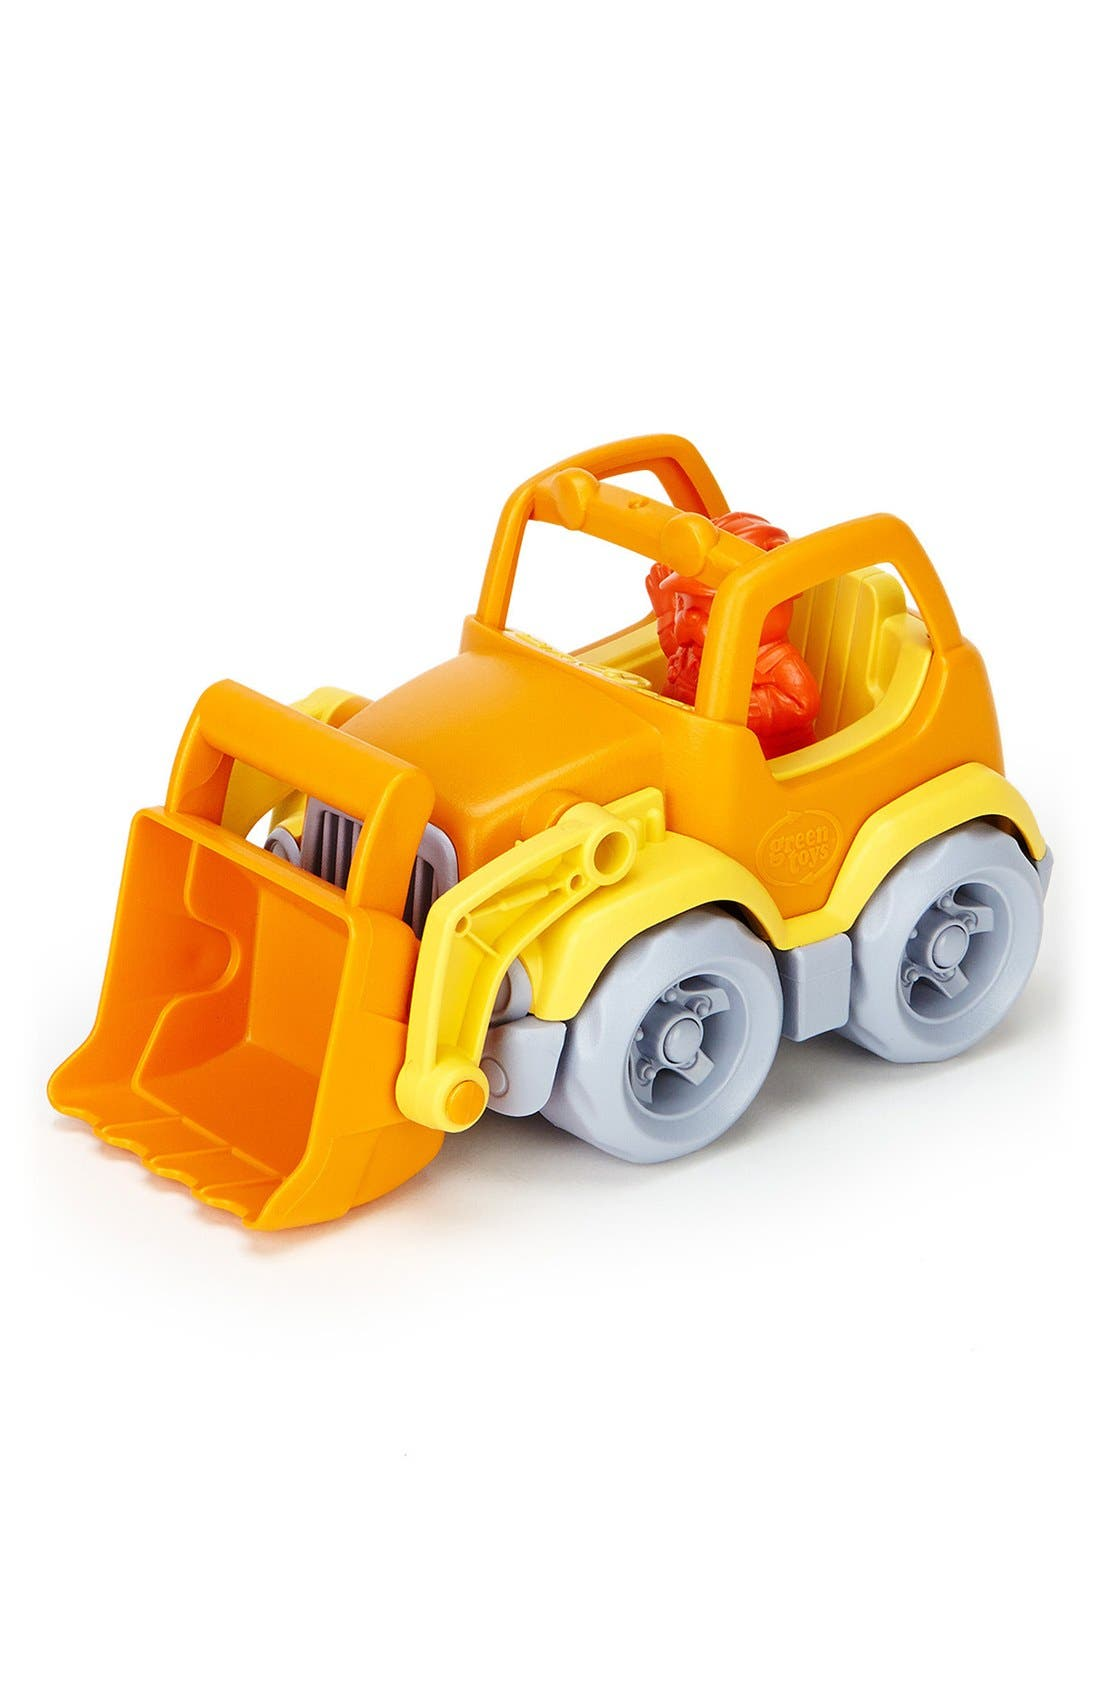 'Scooper' Toy Construction Truck,                             Alternate thumbnail 3, color,                             800